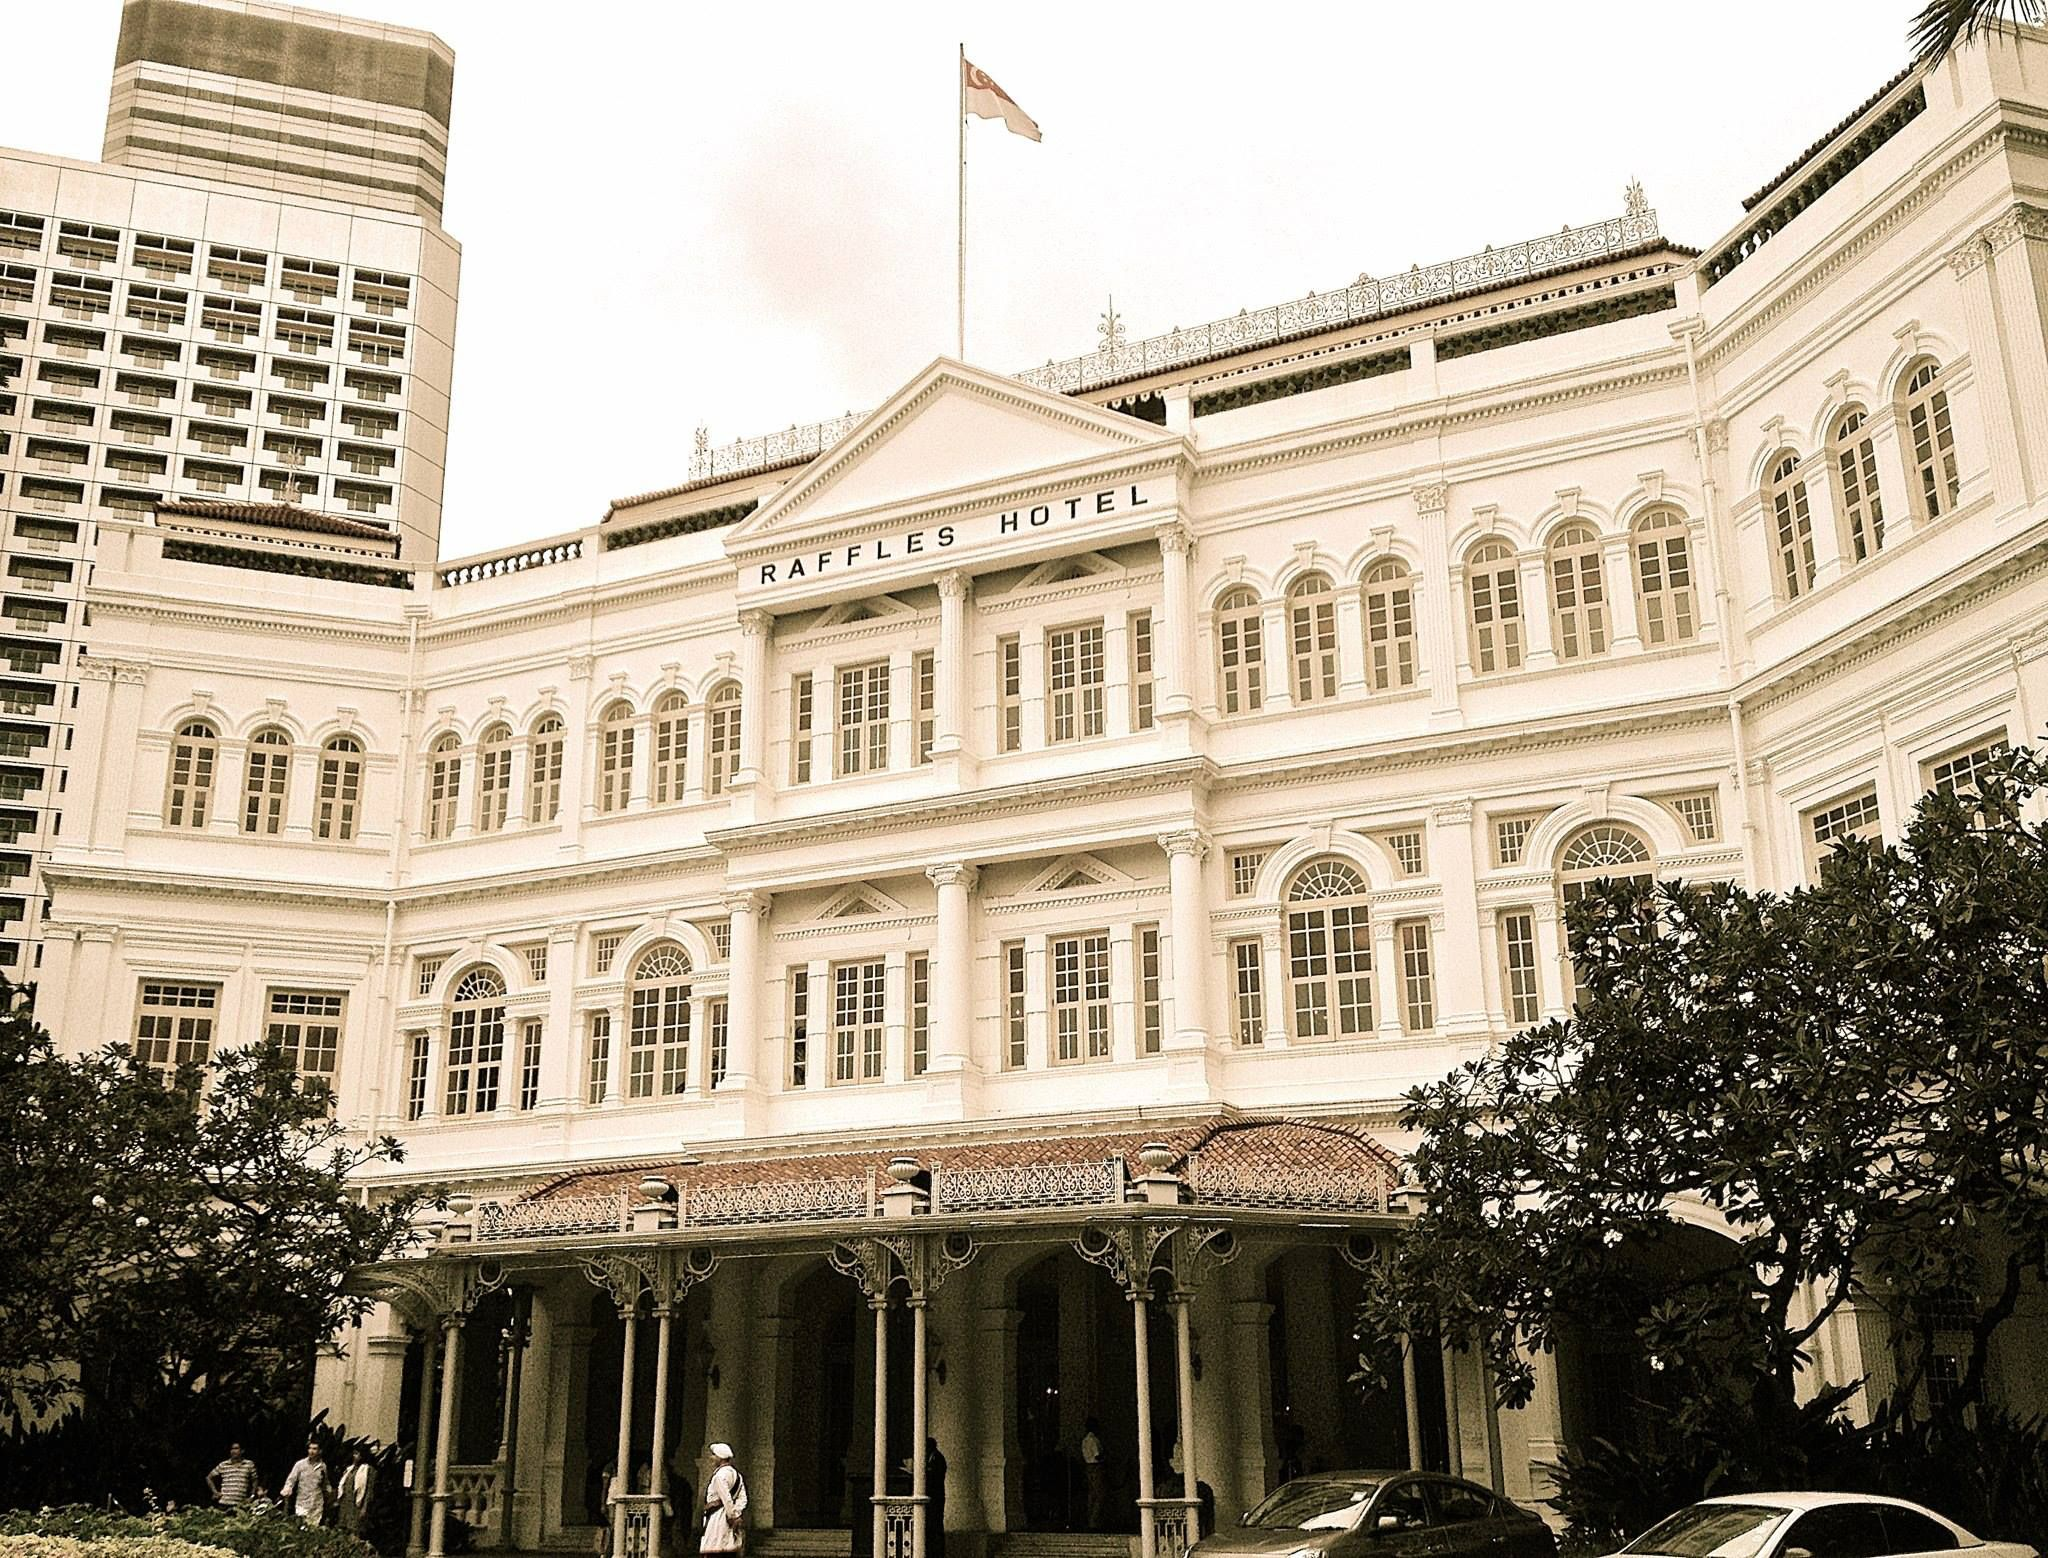 Raffles Hotel Singapore S Best Known Icon And Probably The World S Most Famous Hotel Singapore Hotels Beautiful Hotels Hong Kong Hotels